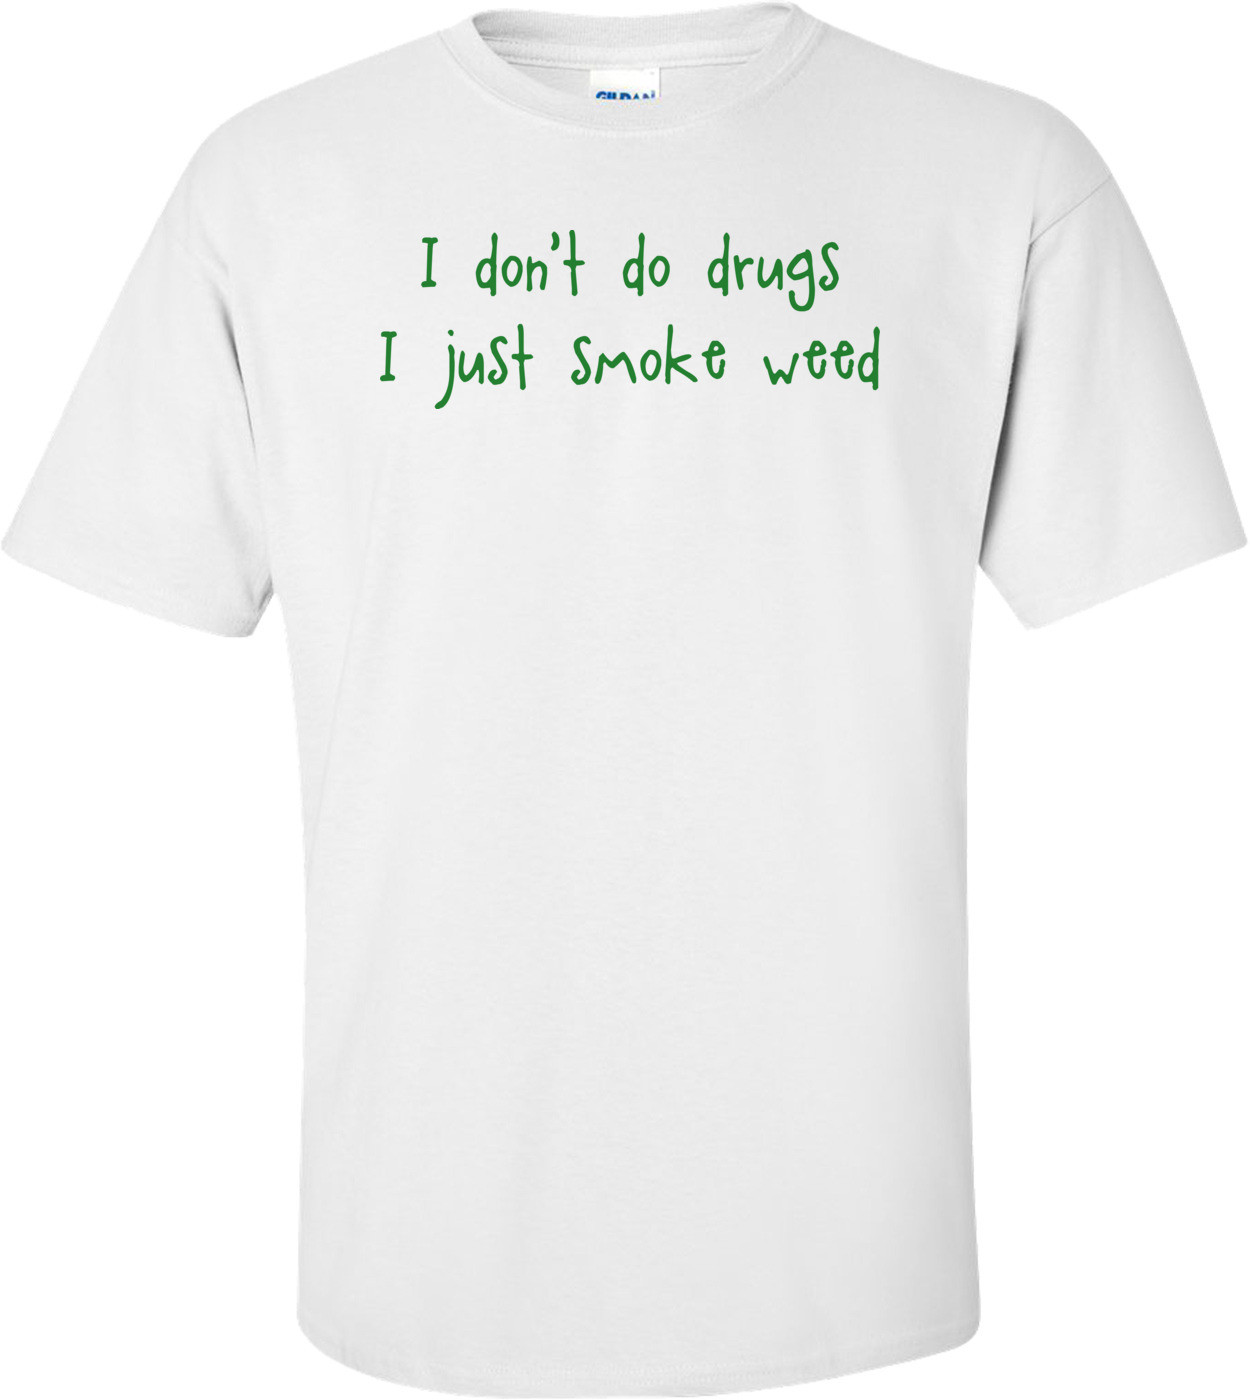 I Don't Do Drugs I Just Smoke Weed Funny Shirt